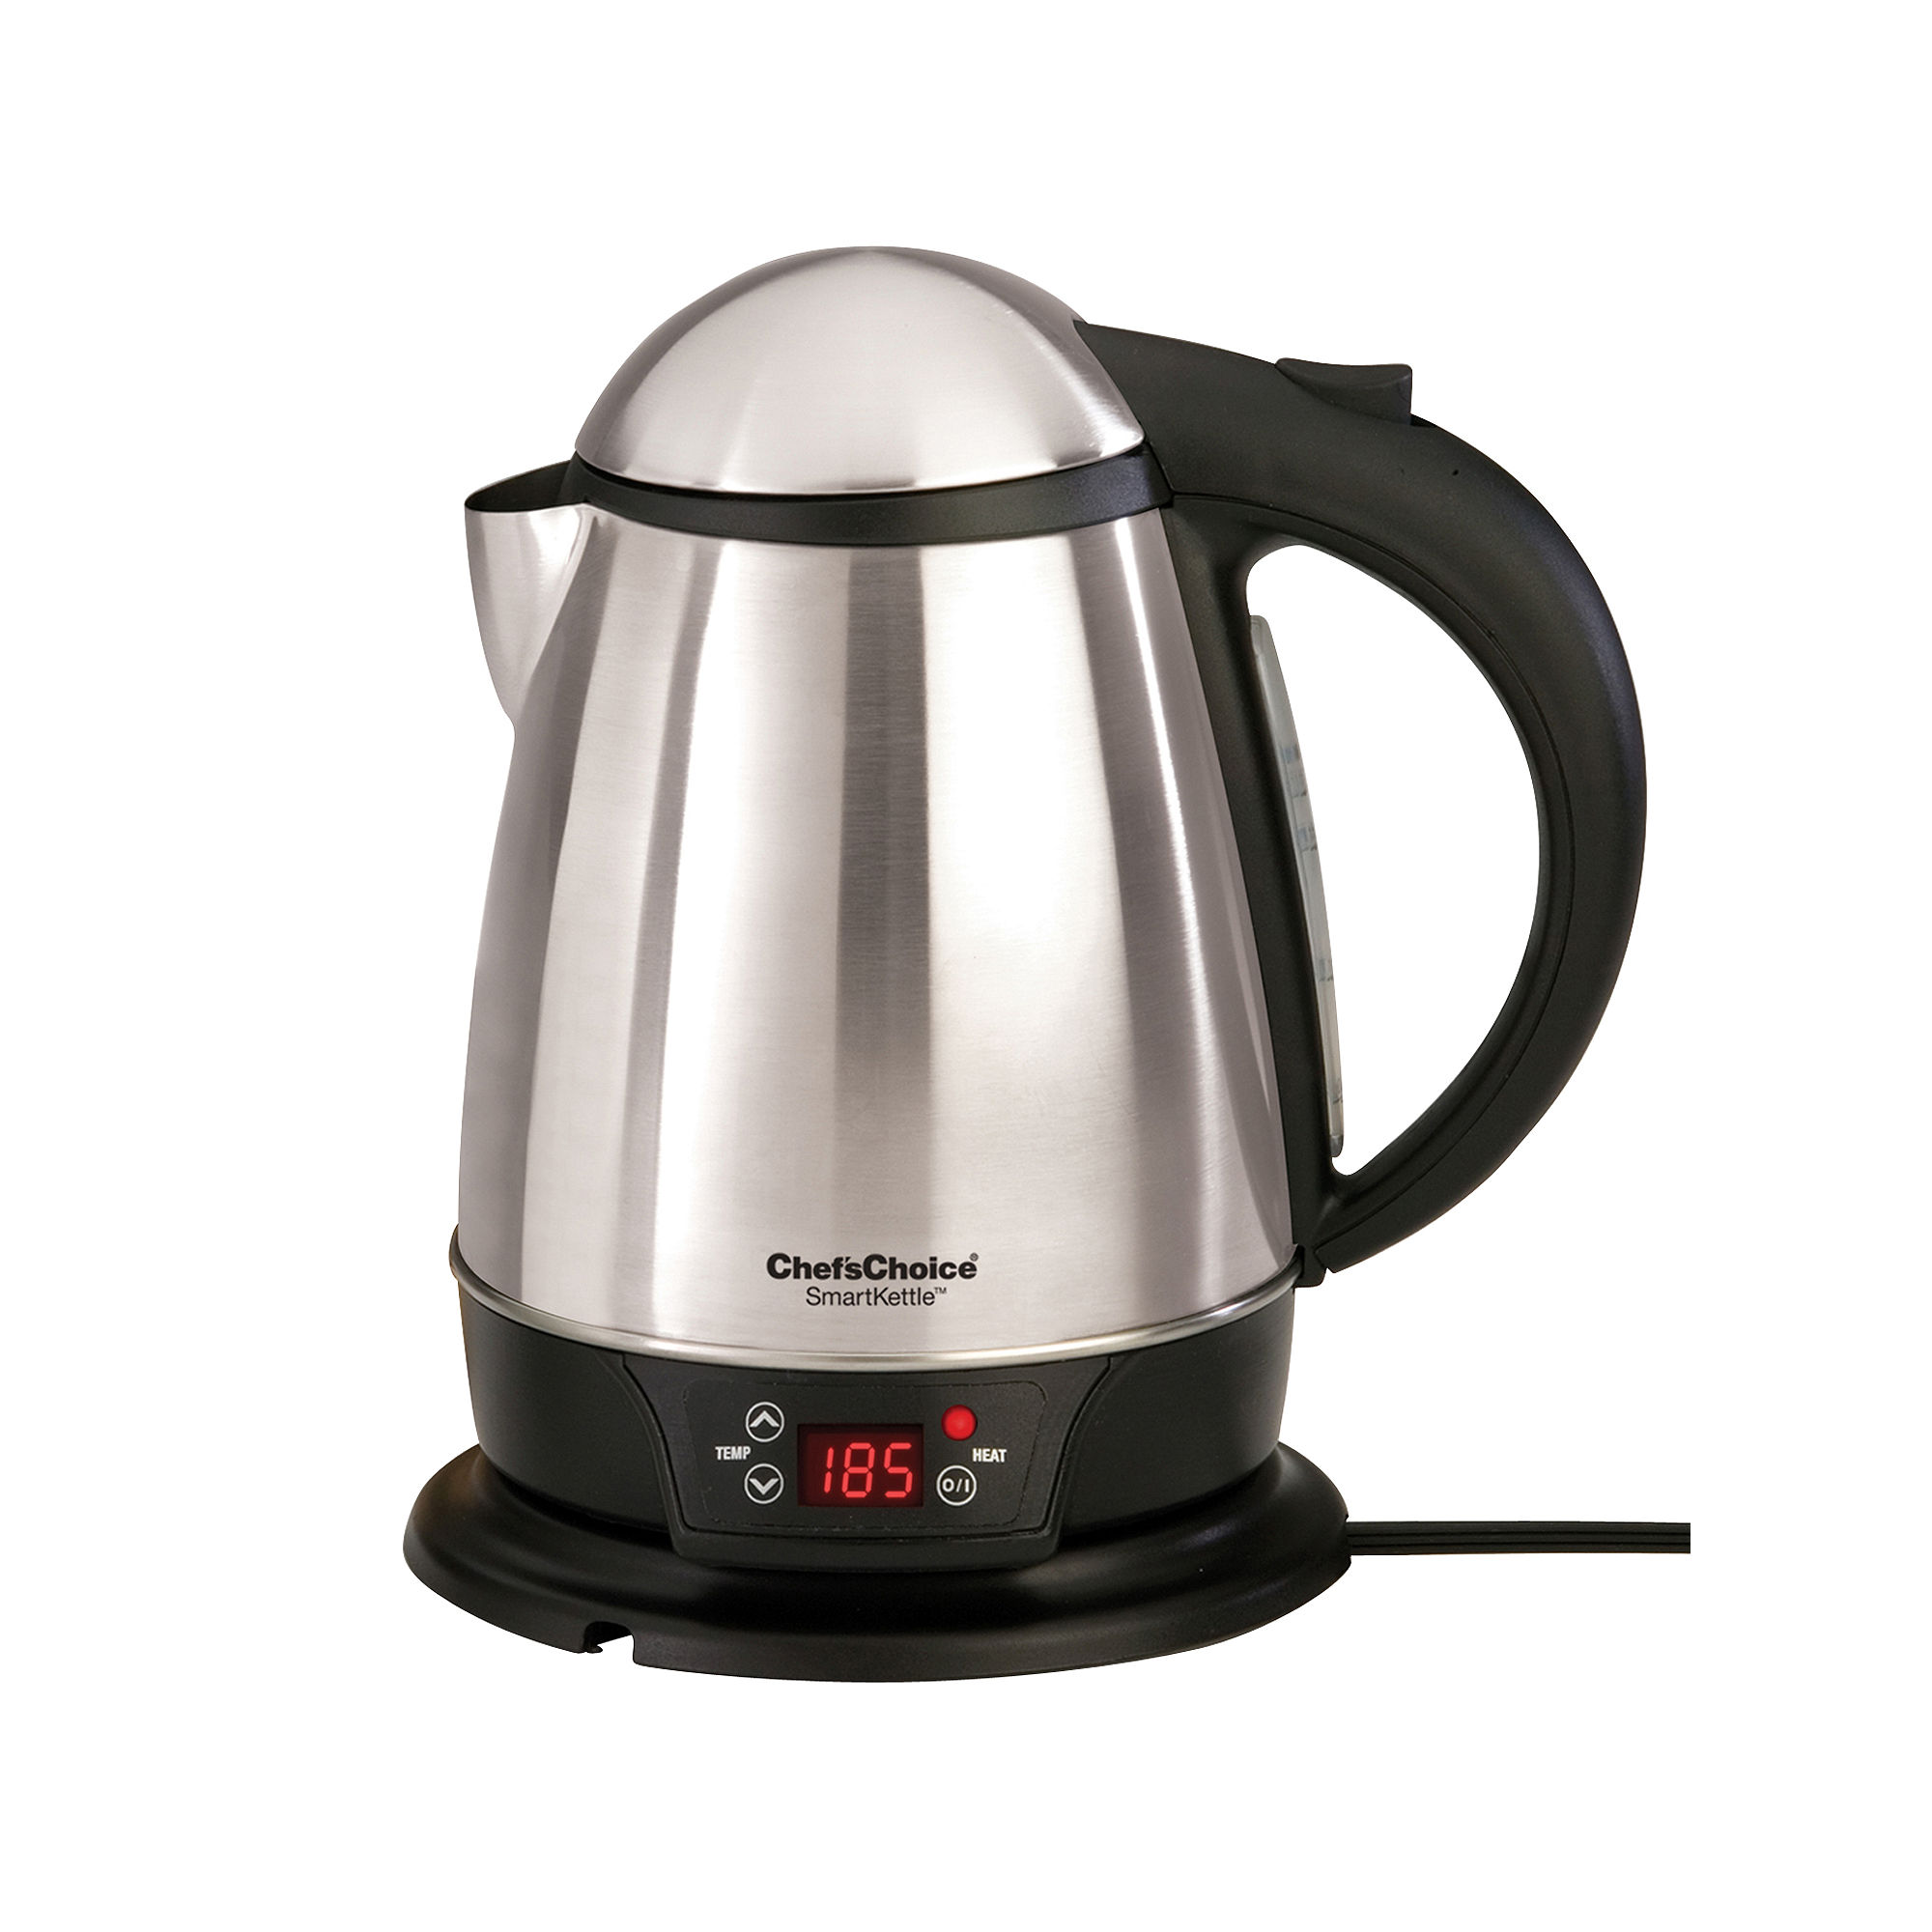 Chef's Choice 1.7-Liter Electric Kettle